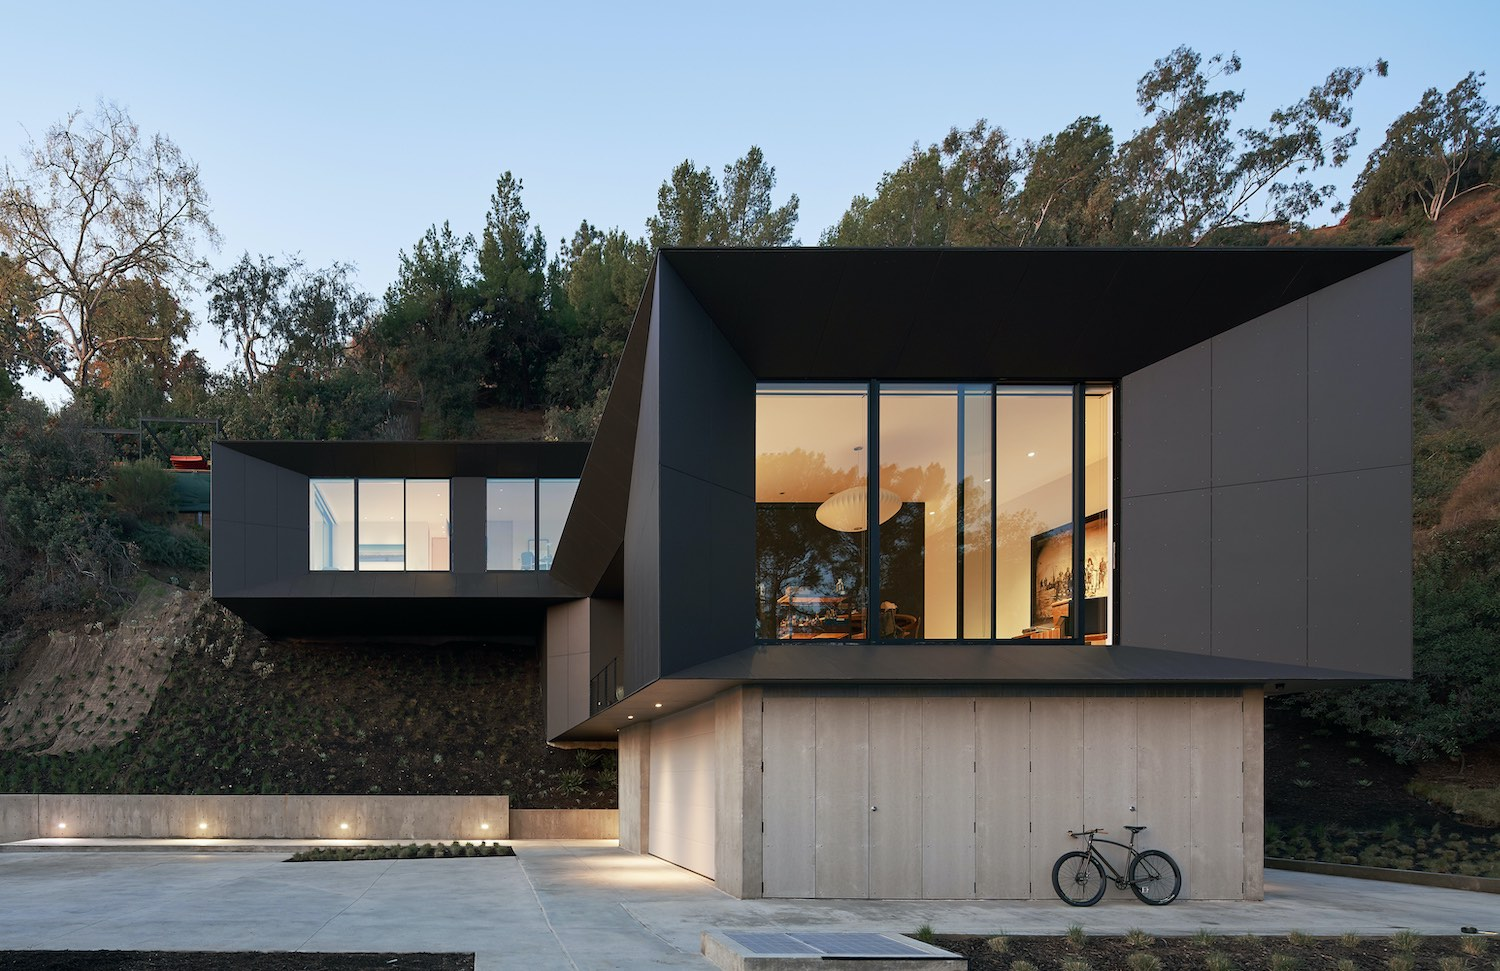 hillside house with black colored facade